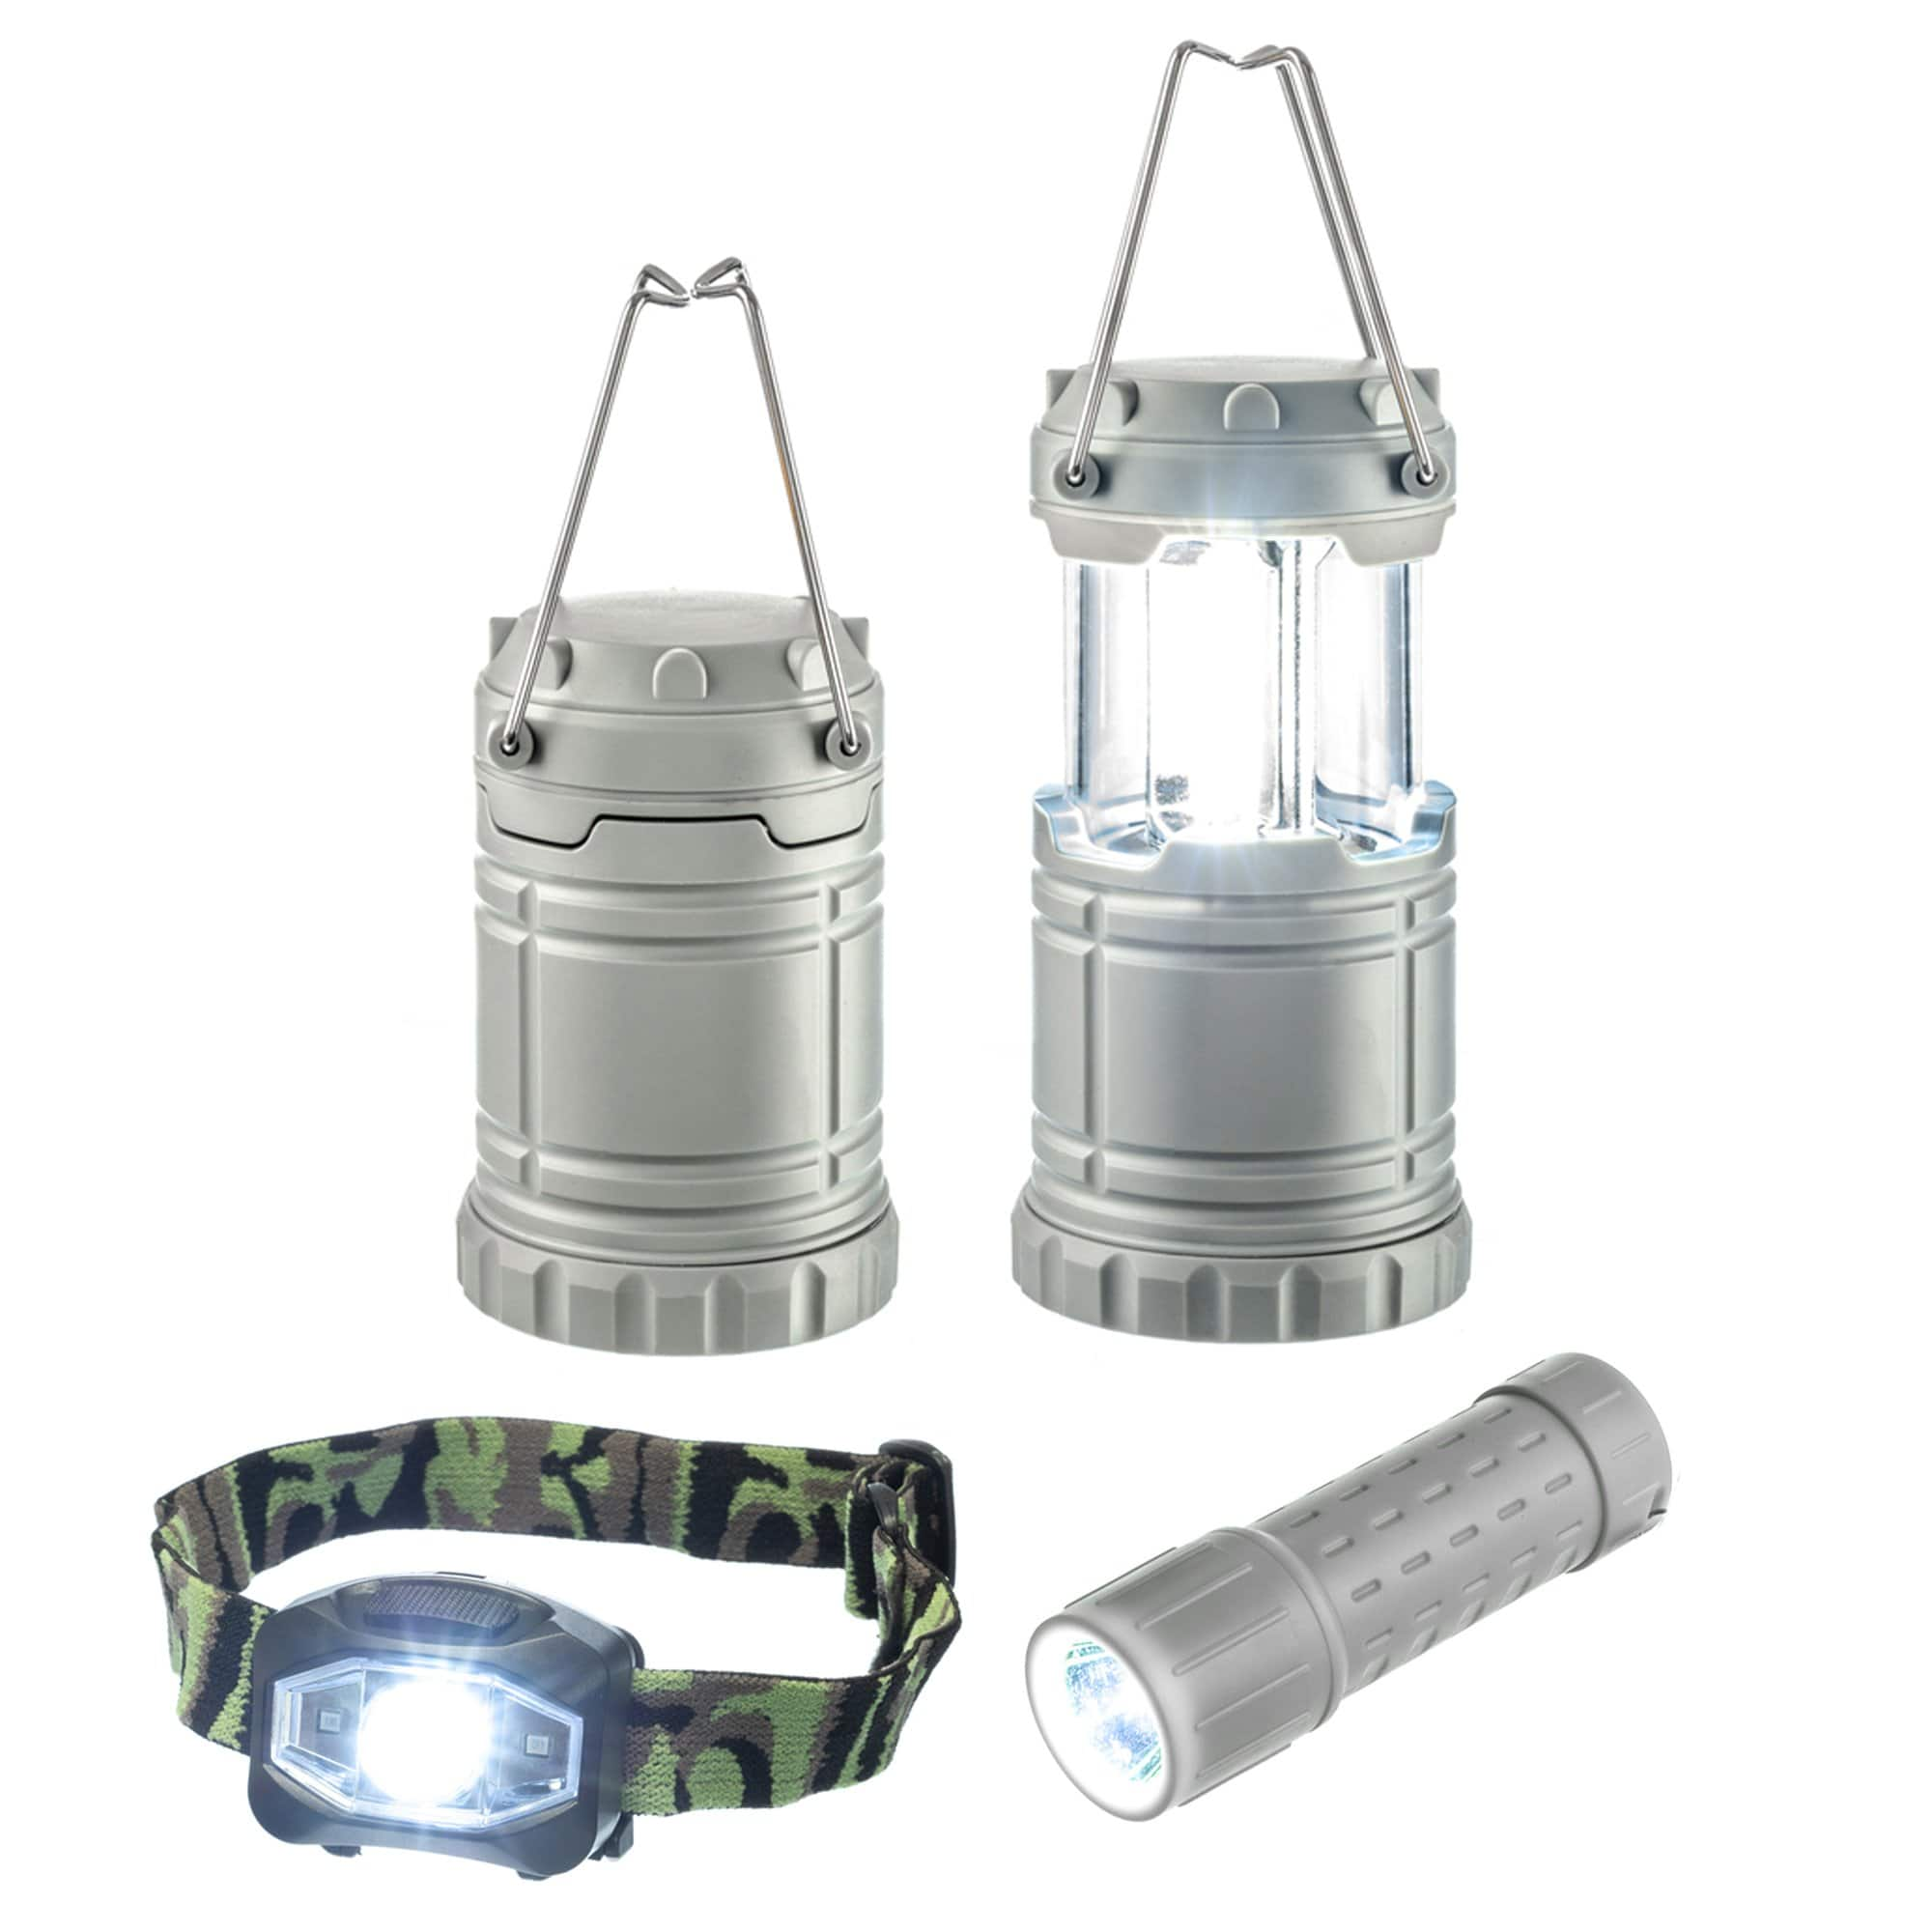 3Pc Camping Light Set (Gray color) - Collapsible Lantern, Head Lamp & Flashlight